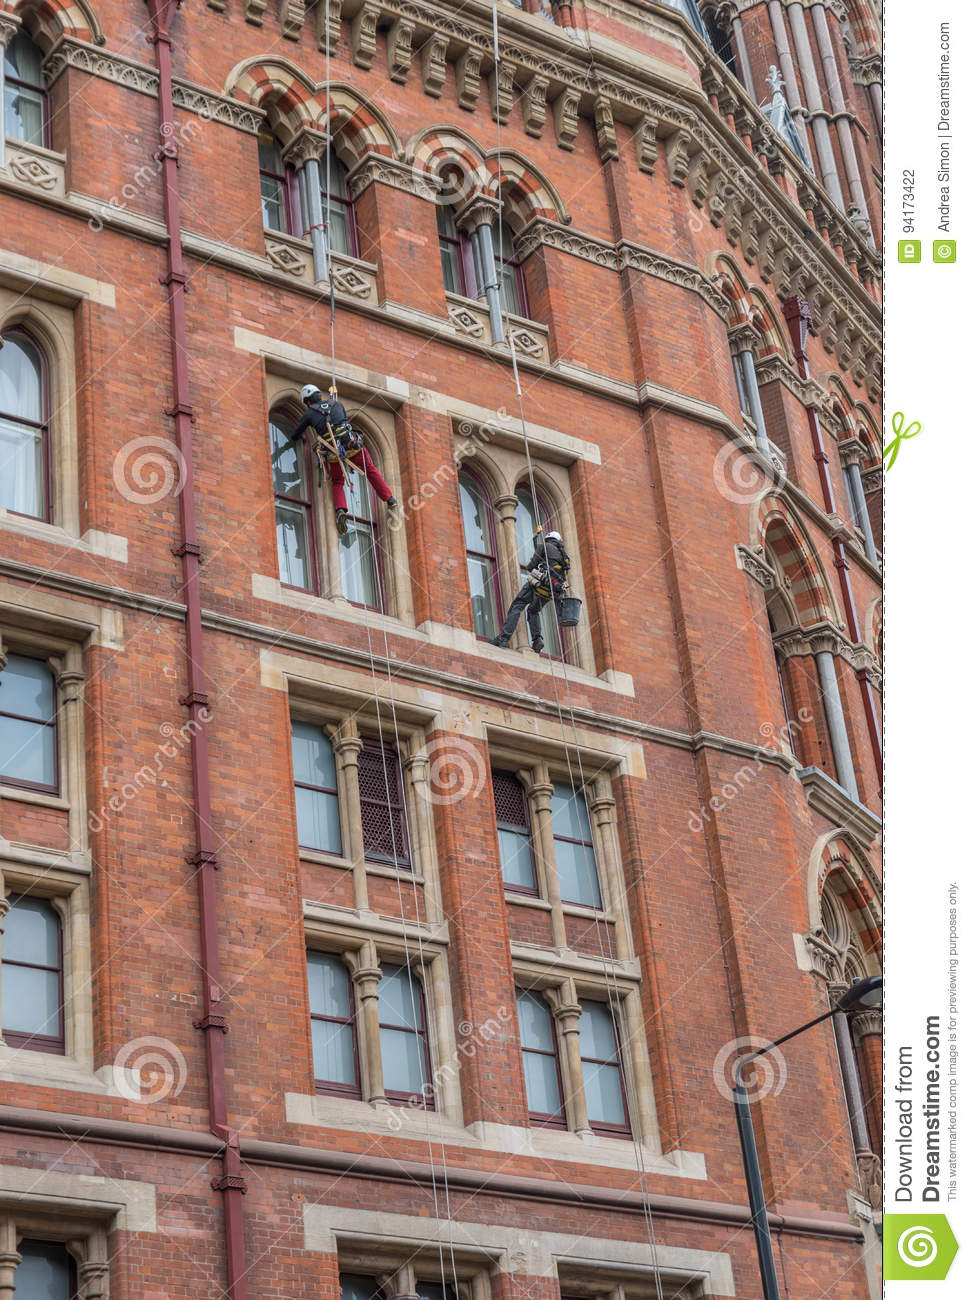 download window cleaner job description nondestructive tester window cleaner professional protection equipment work may london 94173422 - Window Cleaner Job Description